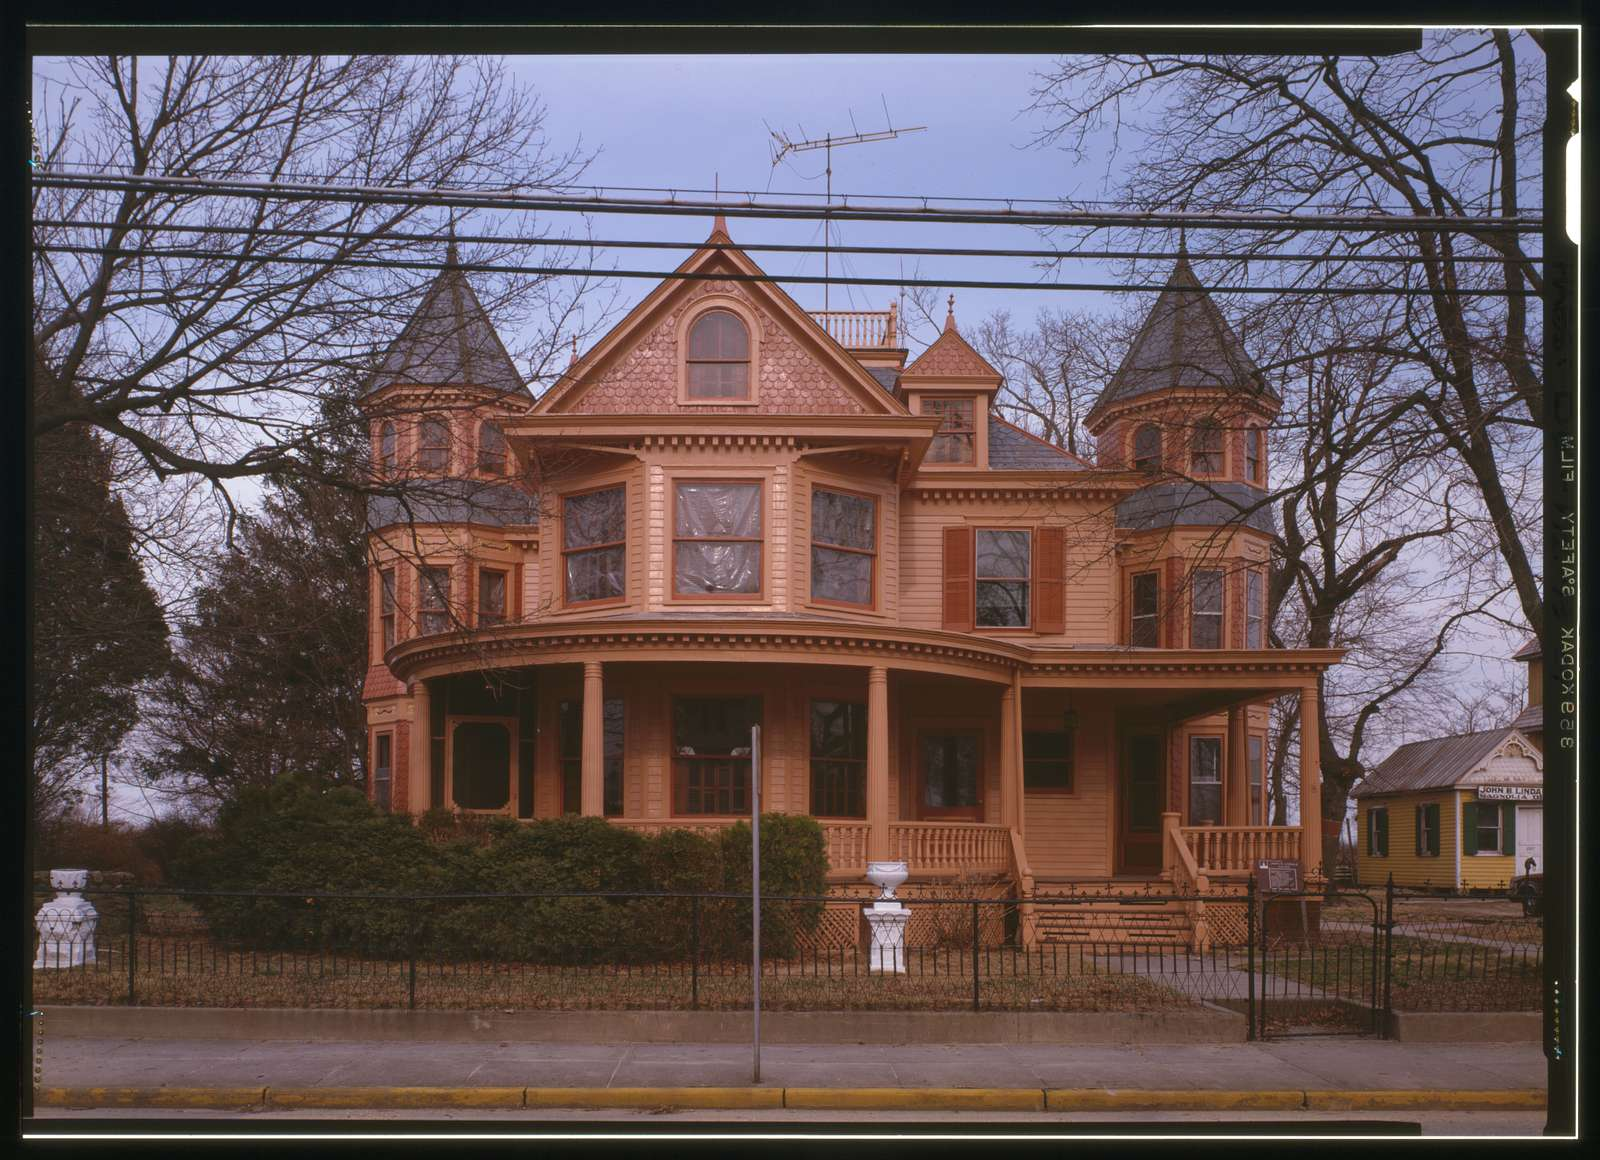 John B. Lindale House & Farm, 24 South Main Street, Magnolia, Kent County, DE